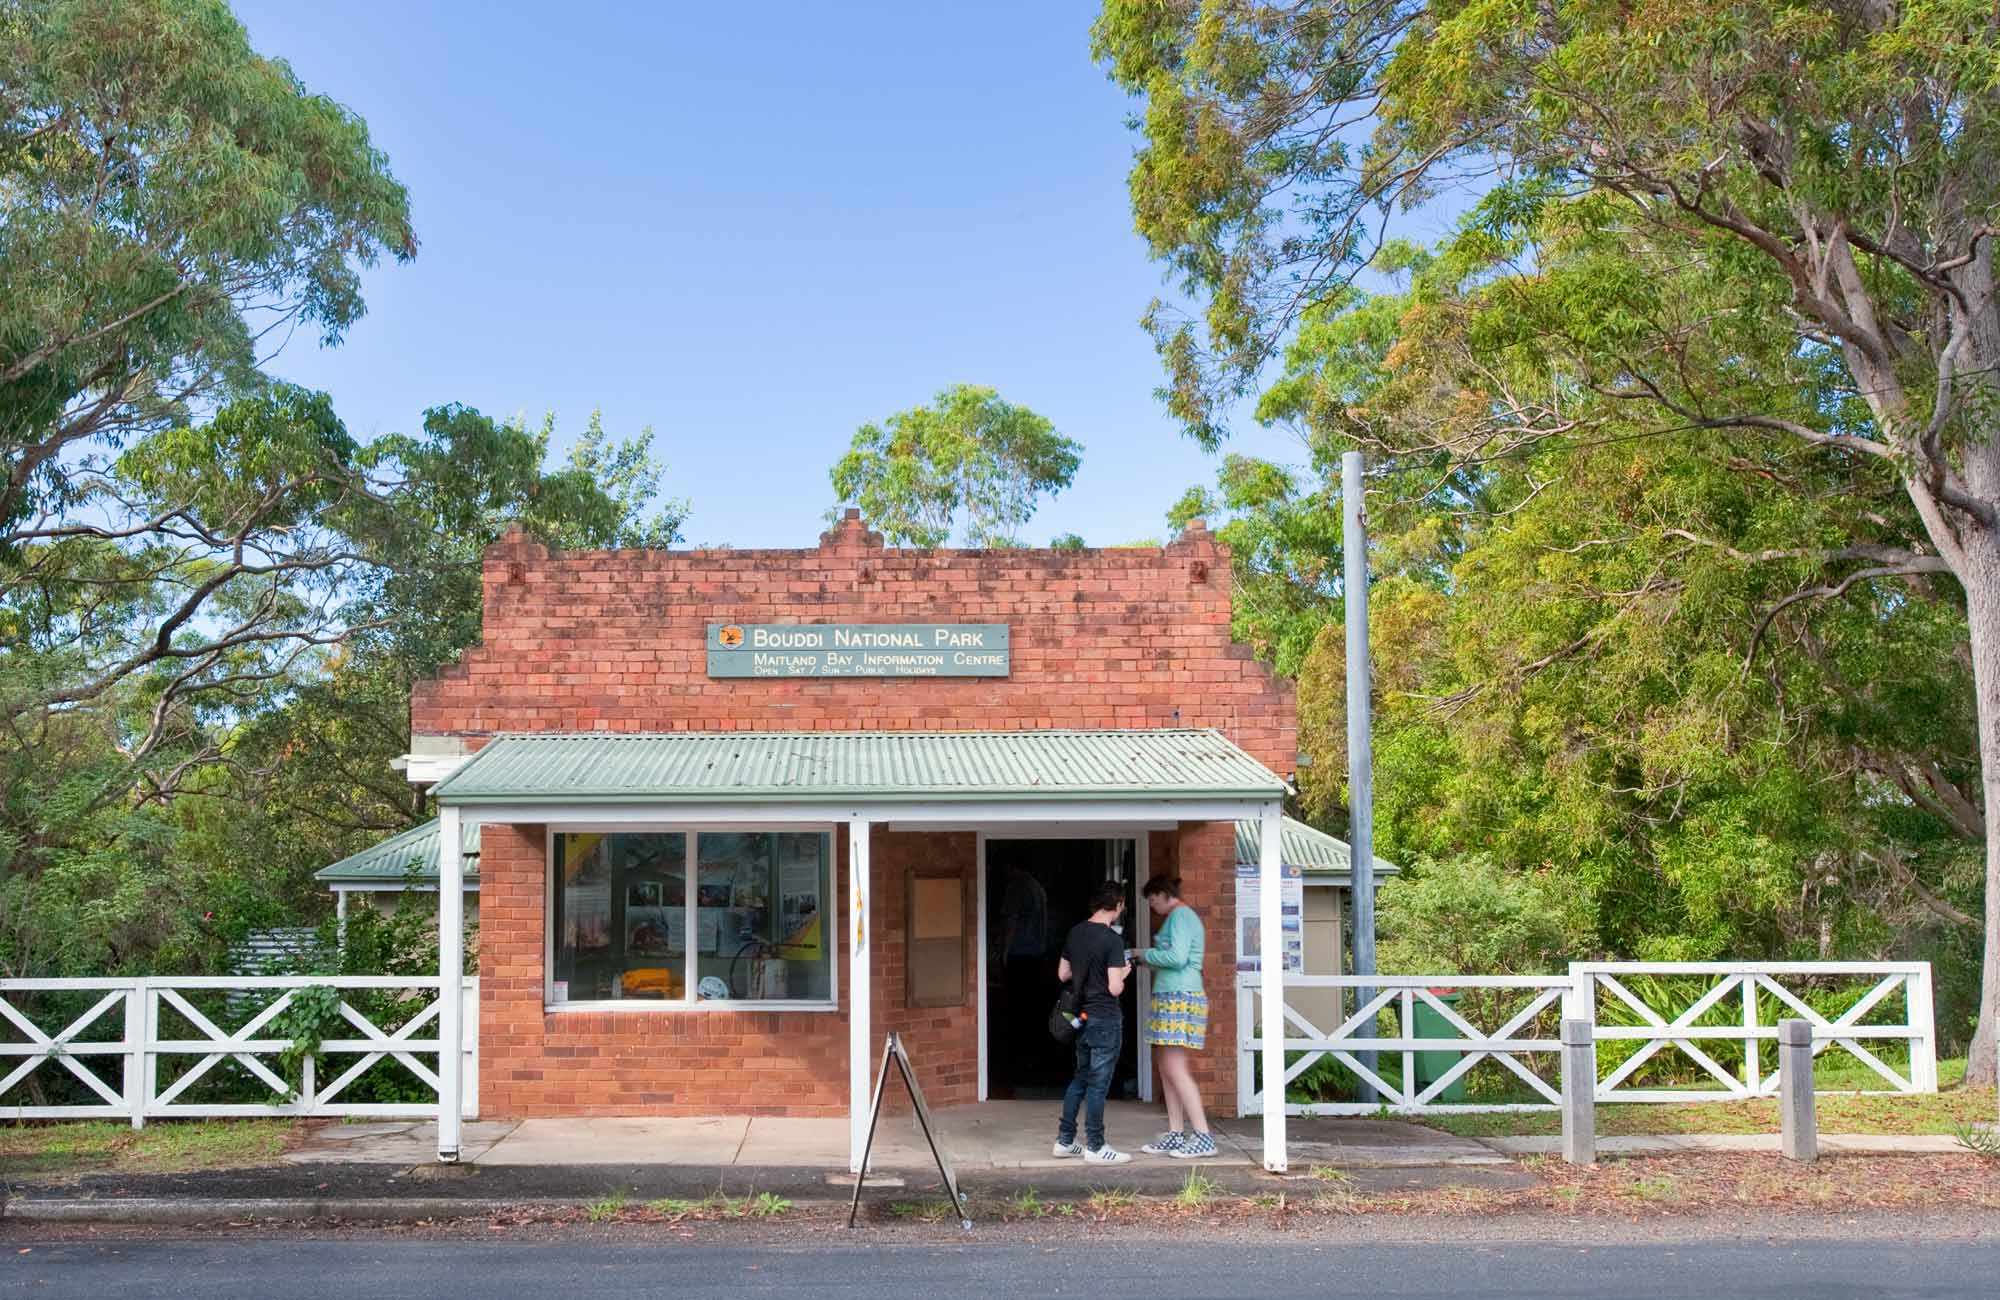 Maitland Bay Information Centre, Bouddi National Park. Photo: Nick Cubbin